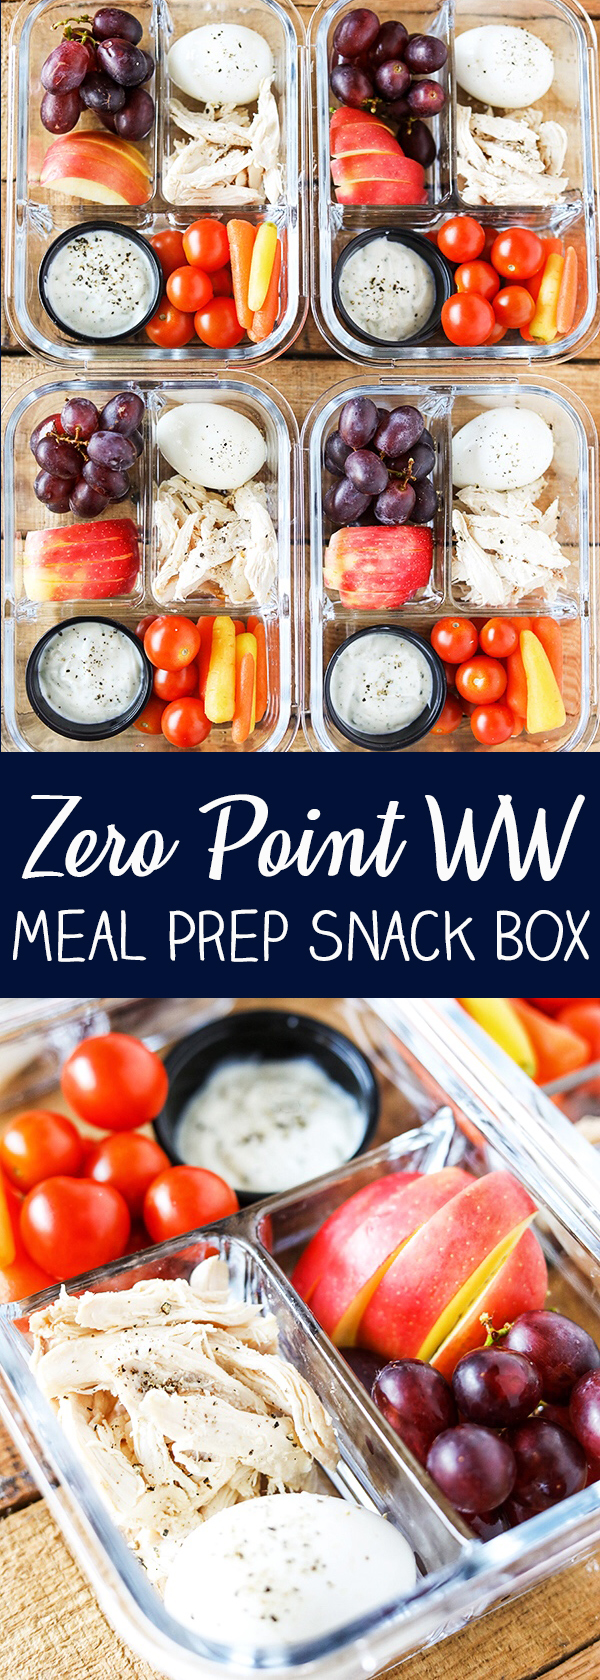 Protein Fruit and Veggie Meal Prep Bistro Box - Zero Weight Watchers Freestyle Points